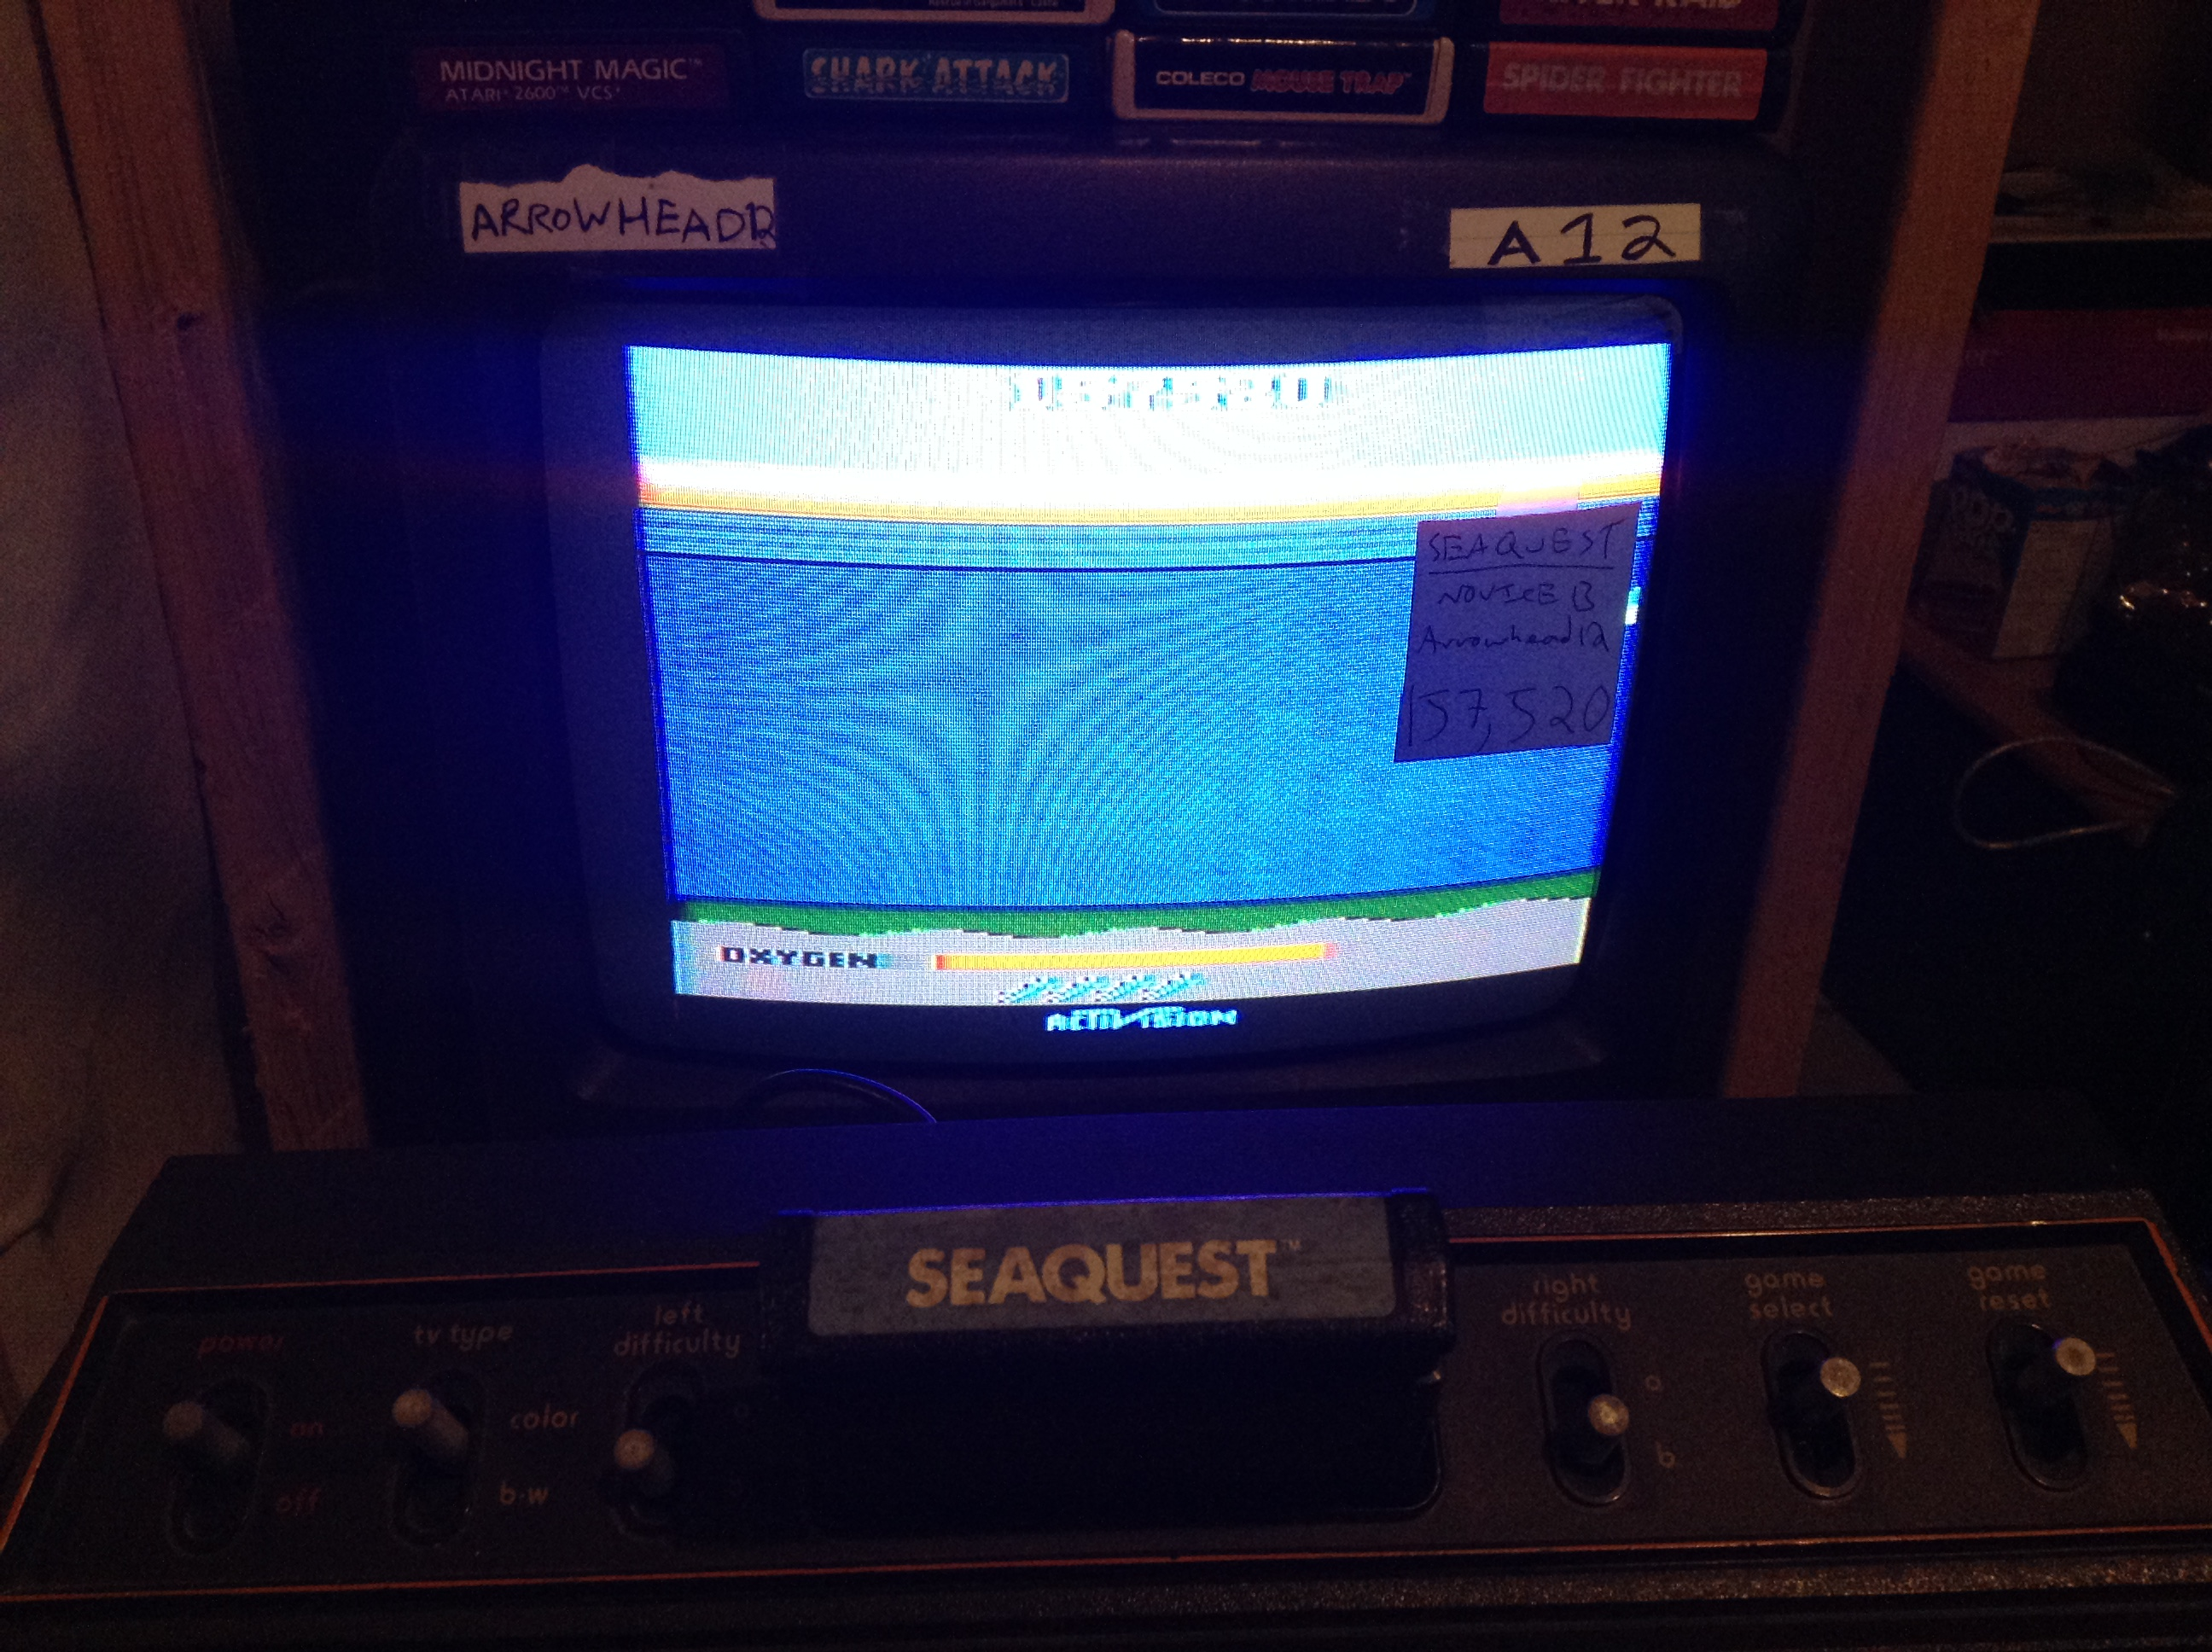 Arrowhead12: Seaquest (Atari 2600 Novice/B) 157,520 points on 2019-05-07 14:57:33